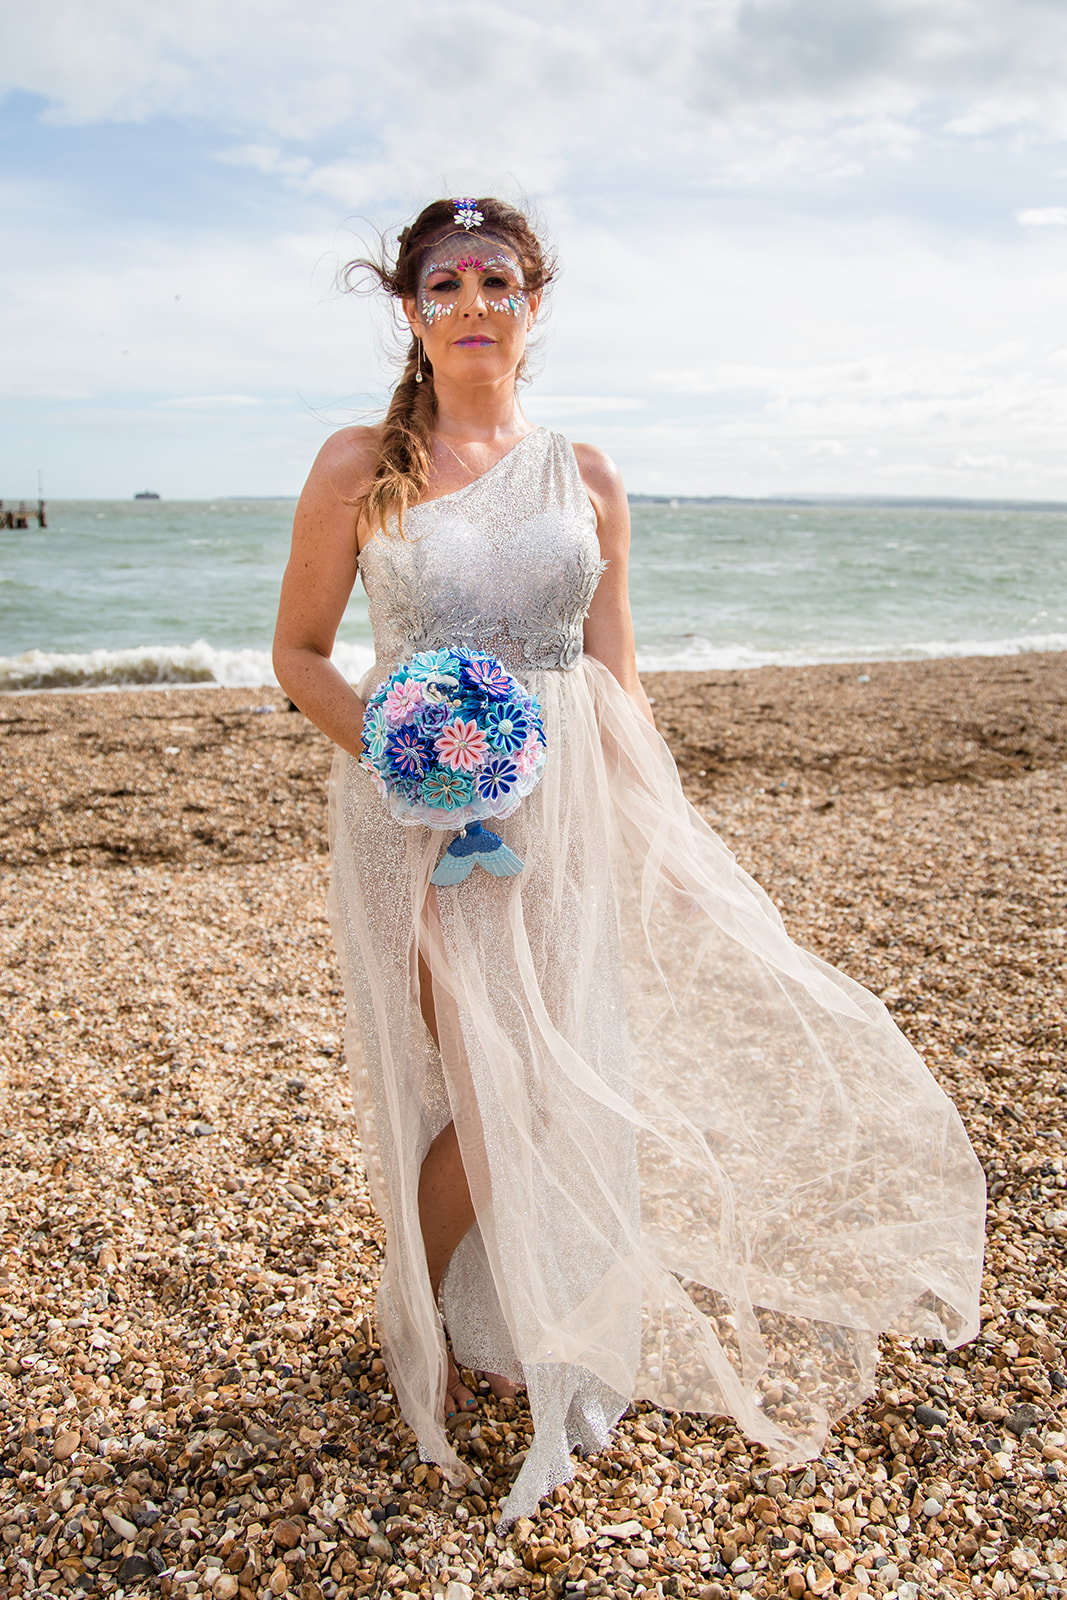 mermaid wedding - beach wedding - quirky wedding - unique wedding - alternative seaside wedding - festival bride - mermaid bride